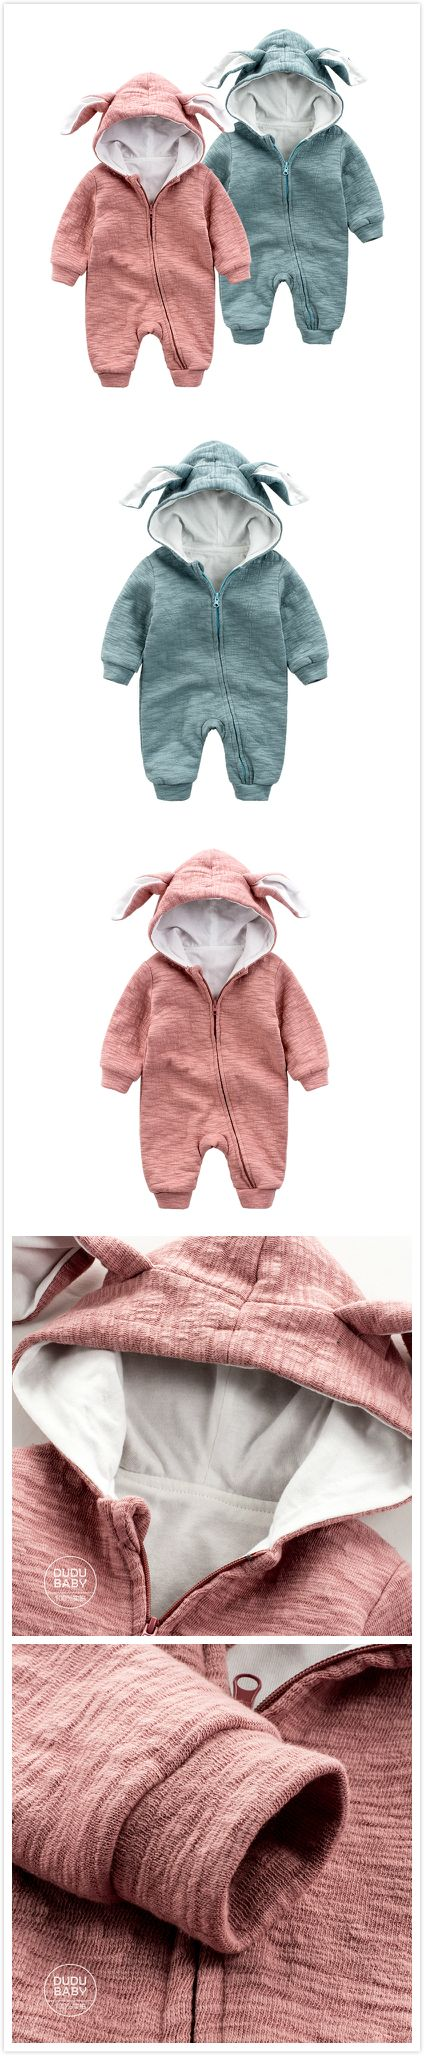 Rabbit Ears Infant toddler Baby Boy Girl Unisex Hooded Clothes Jumpsuit Romper Long Sleeve 3-24Month For Autumn Winter